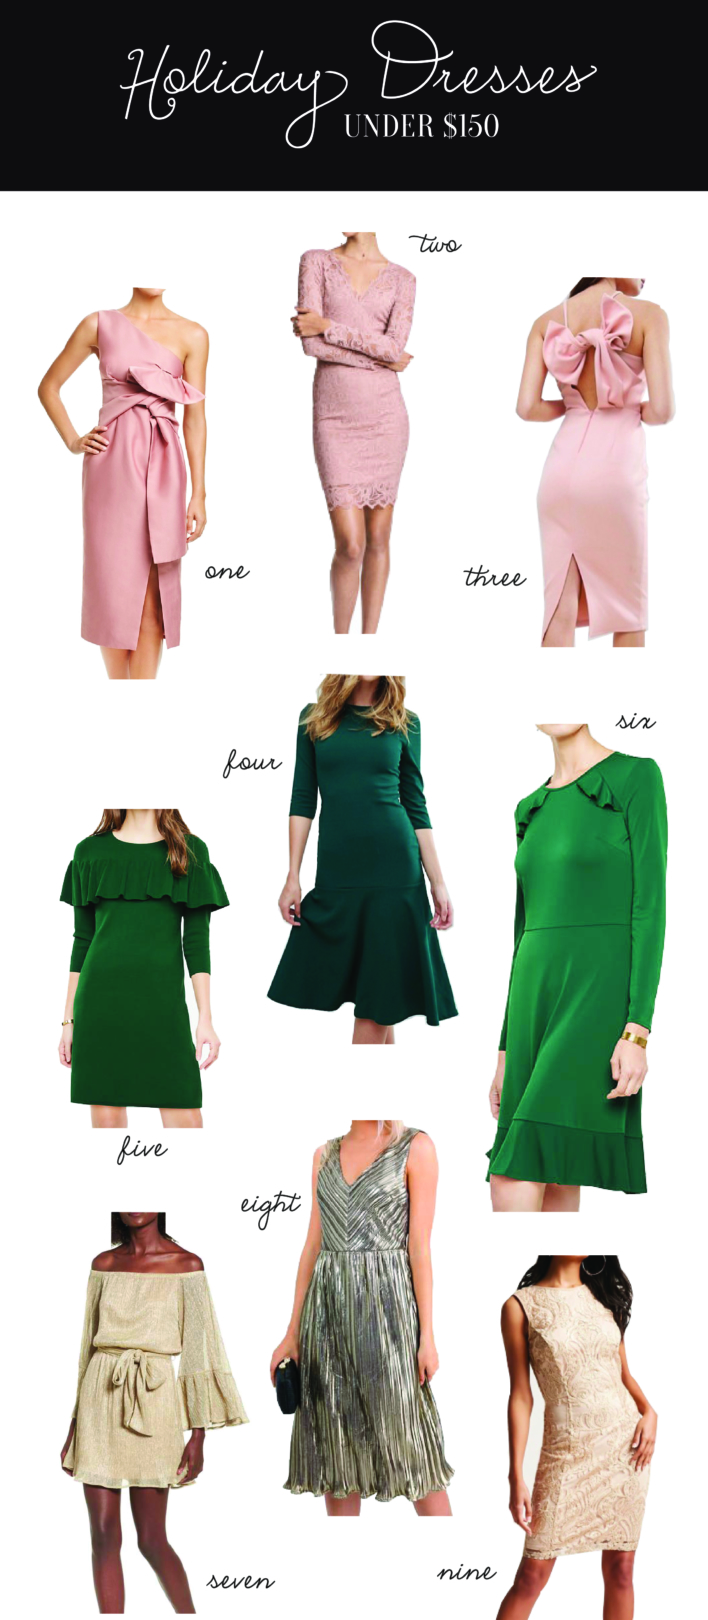 Holiday Dresses Under $150